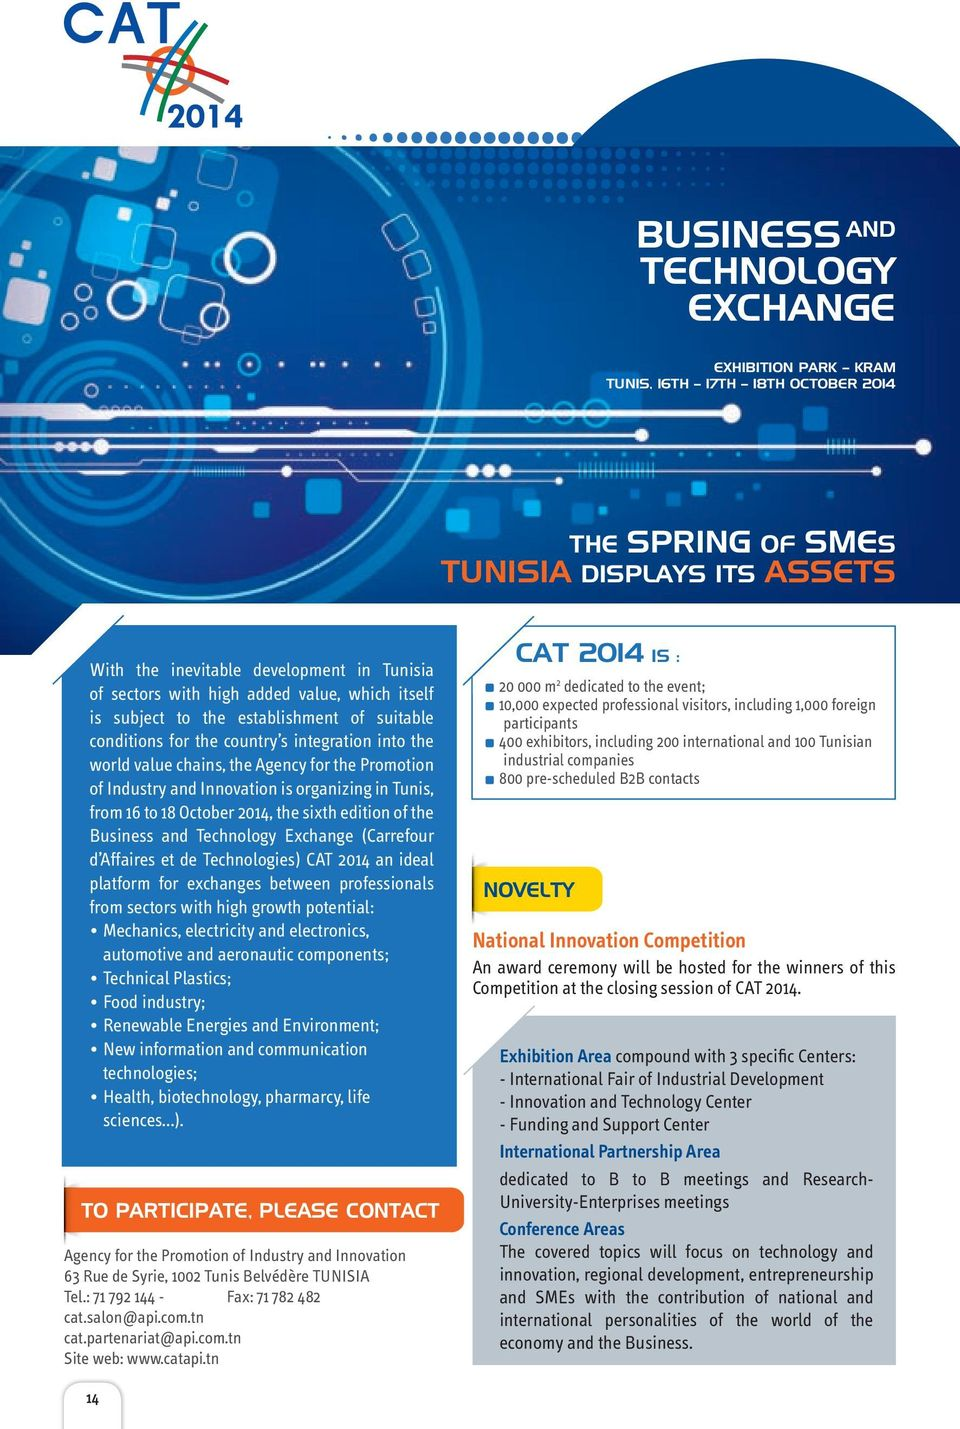 organizing in Tunis, from 16 to 18 October 2014, the sixth edition of the Business and Technology Exchange (Carrefour d Affaires et de Technologies) CAT 2014 an ideal platform for exchanges between